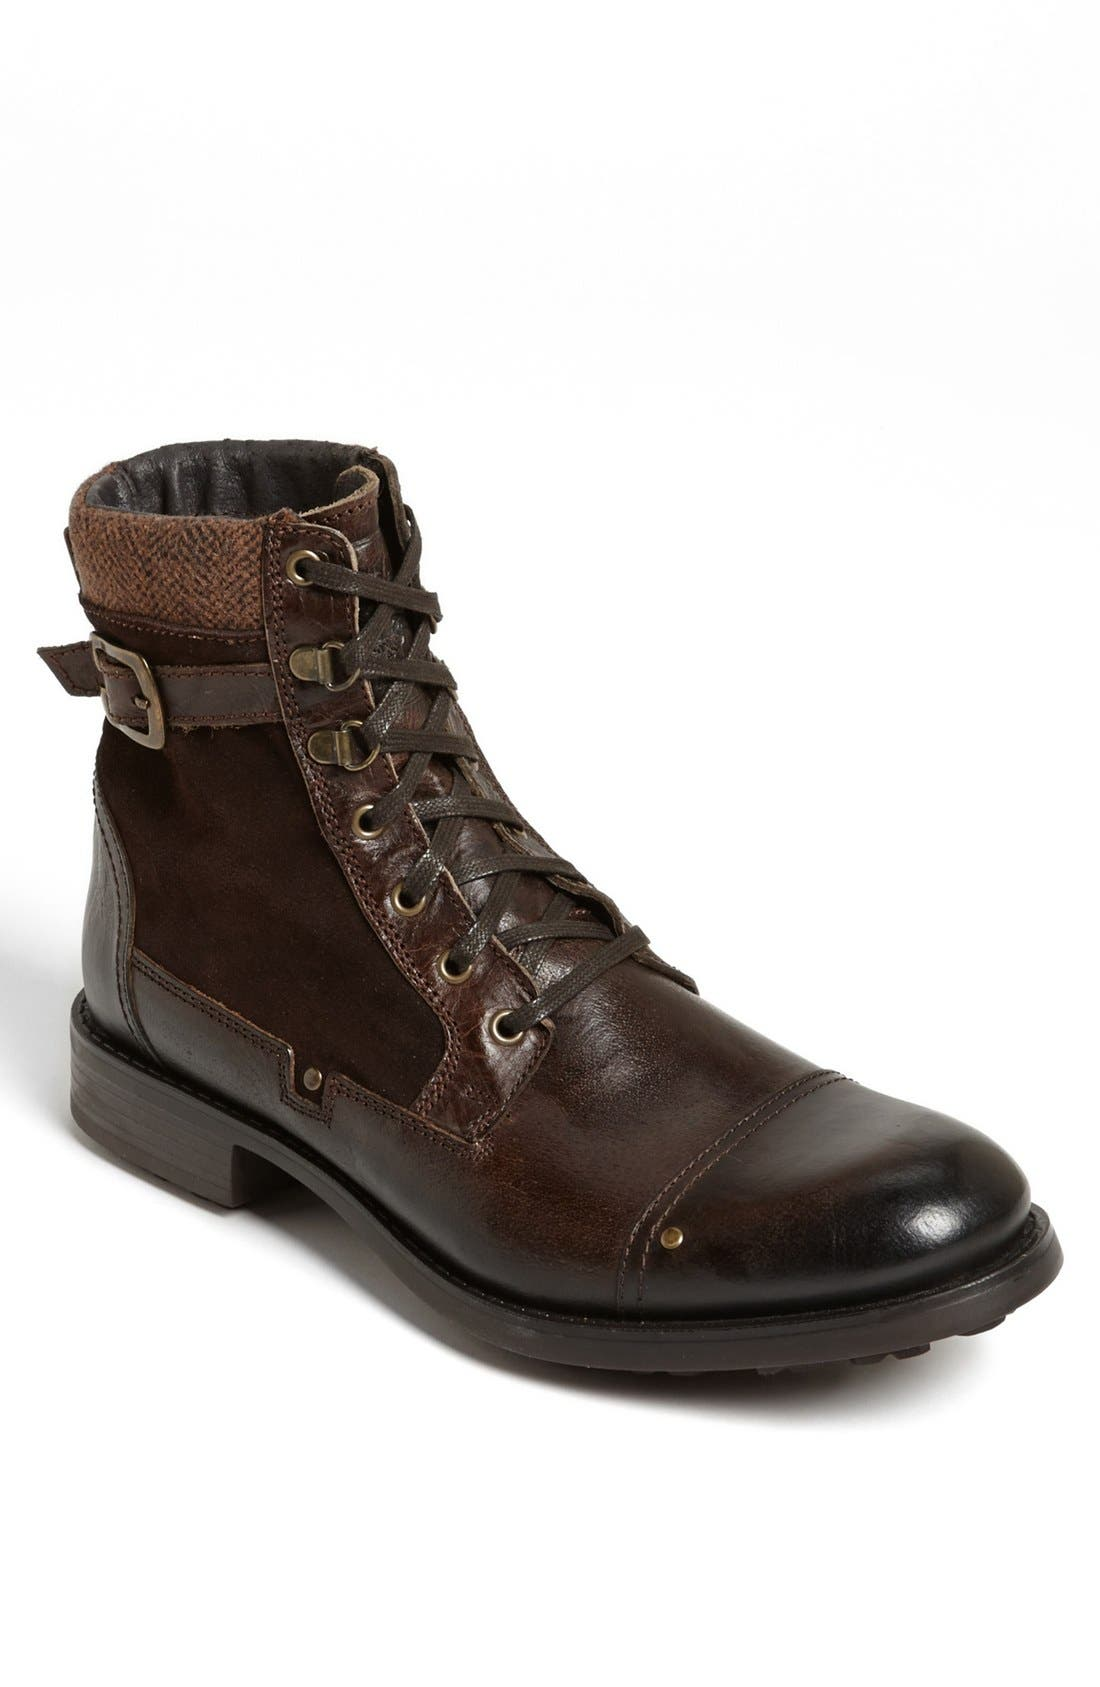 Alternate Image 1 Selected - ZIGIny 'Bravo' Cap Toe Boot